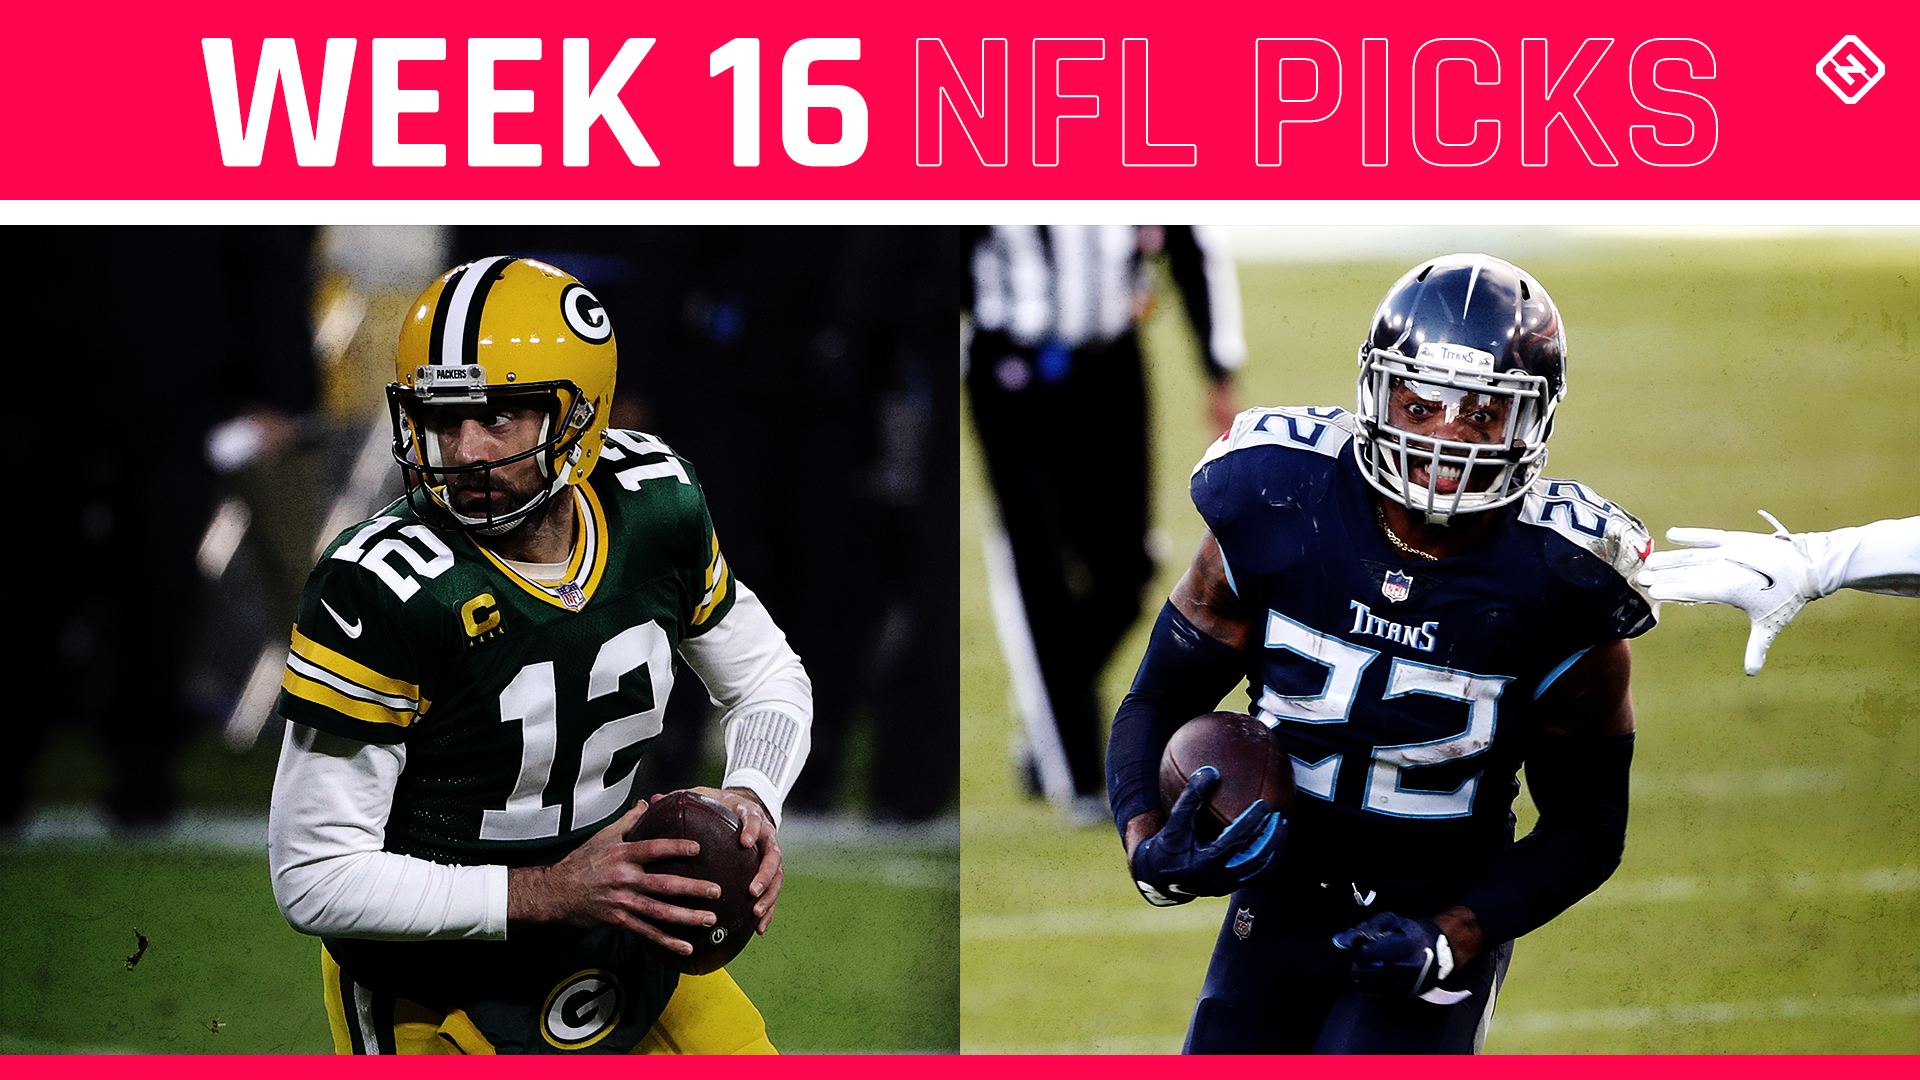 Nfl Picks Predictions For Week 16 Packers Top Titans In Thriller Colts Upset Steelers Cowboys End Eagles Sporting News